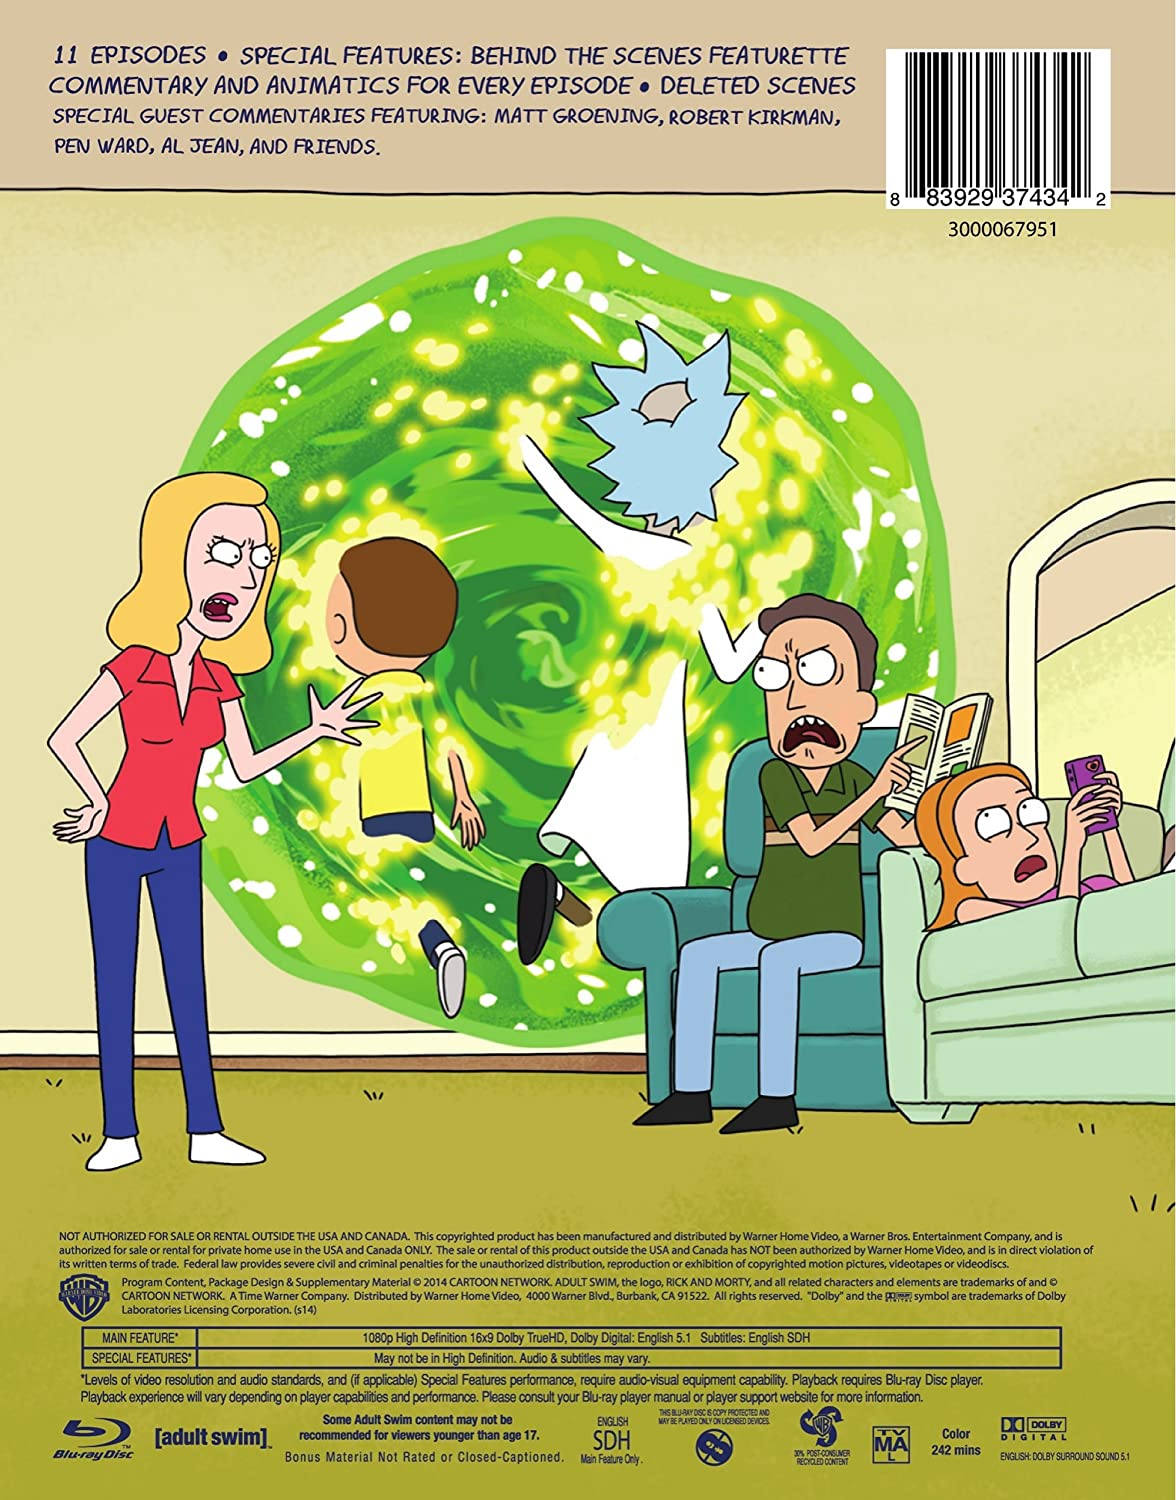 Amazon com: Rick & Morty: Season 1 [Blu-ray]: Ben Diskin, Eric Dane